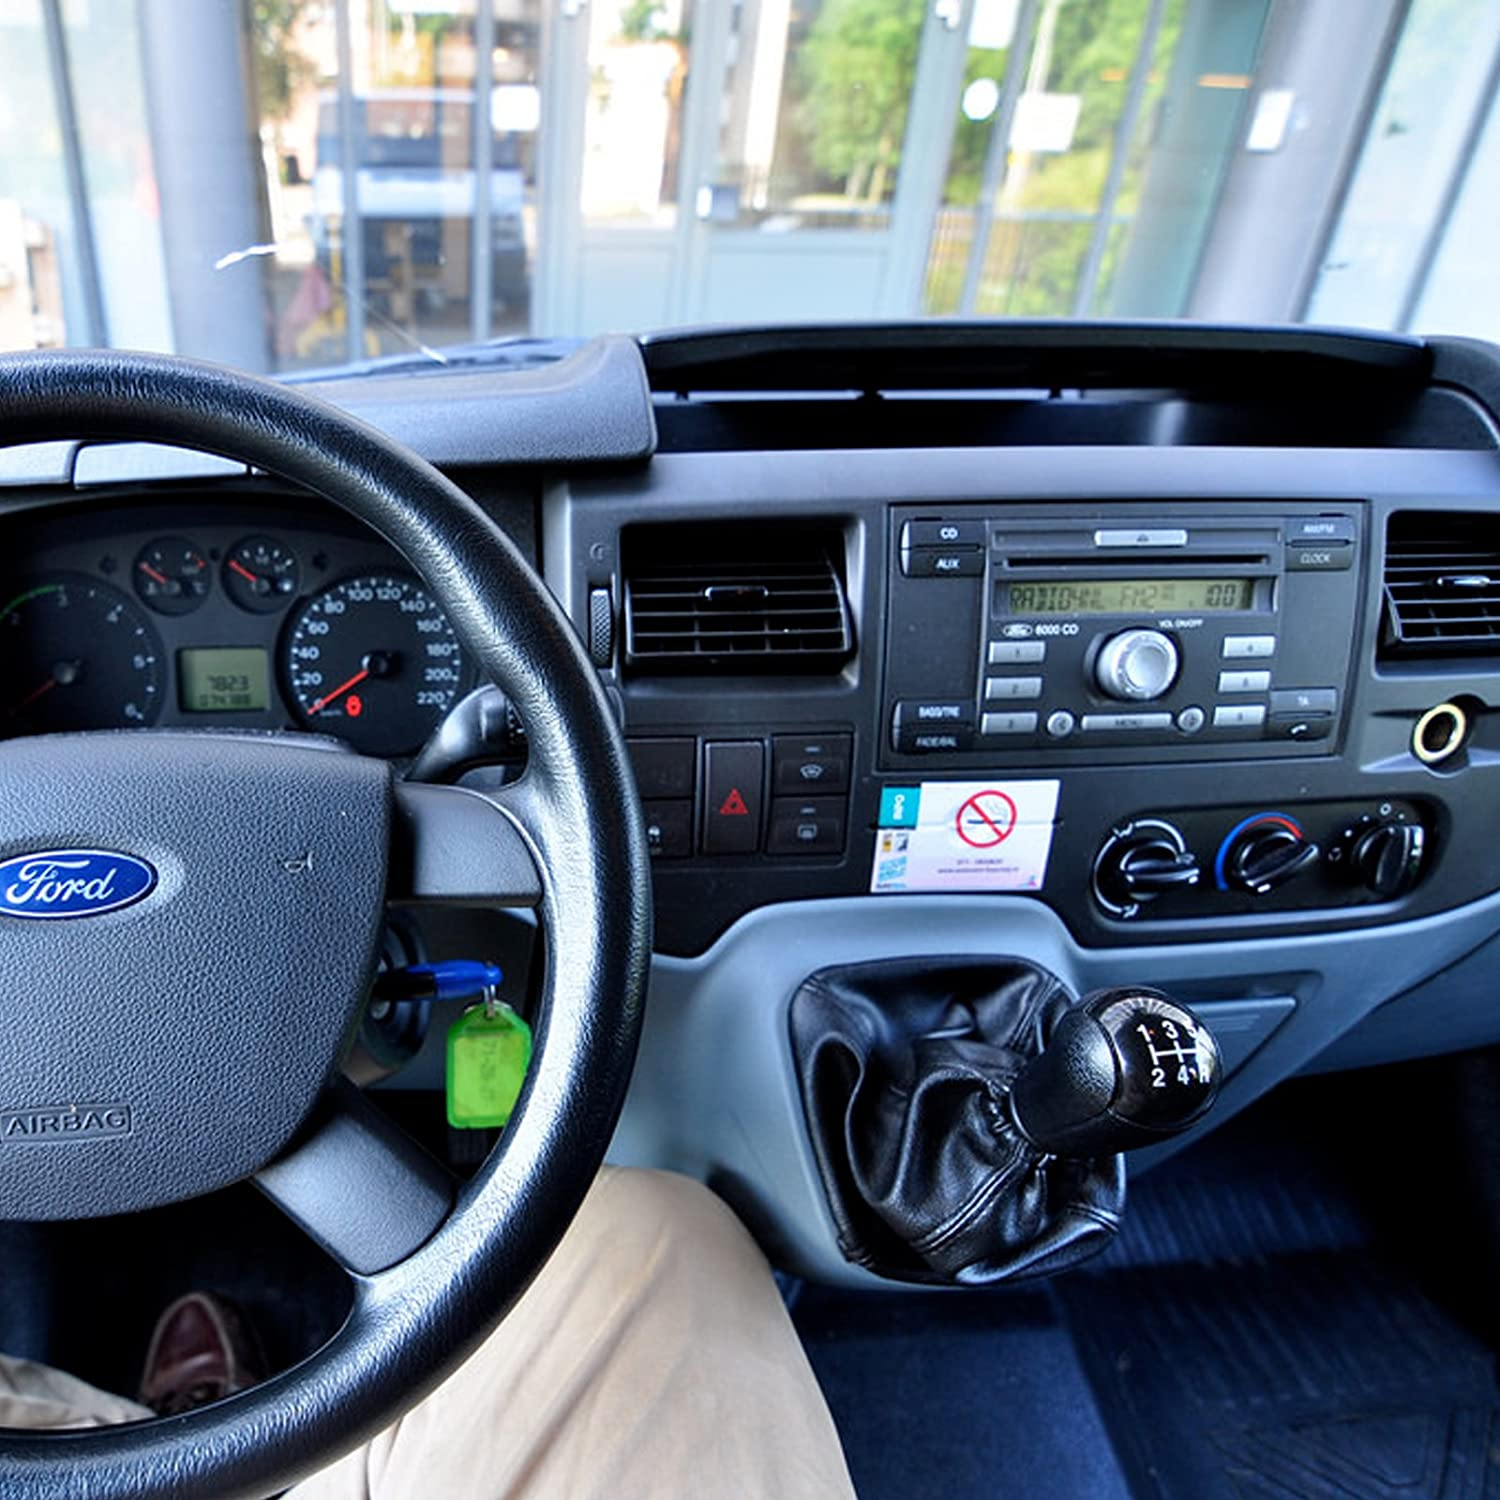 Ford C-Max, Connect, Fiesta, Focus, Fusion, Transit Car Stereo Radio ...